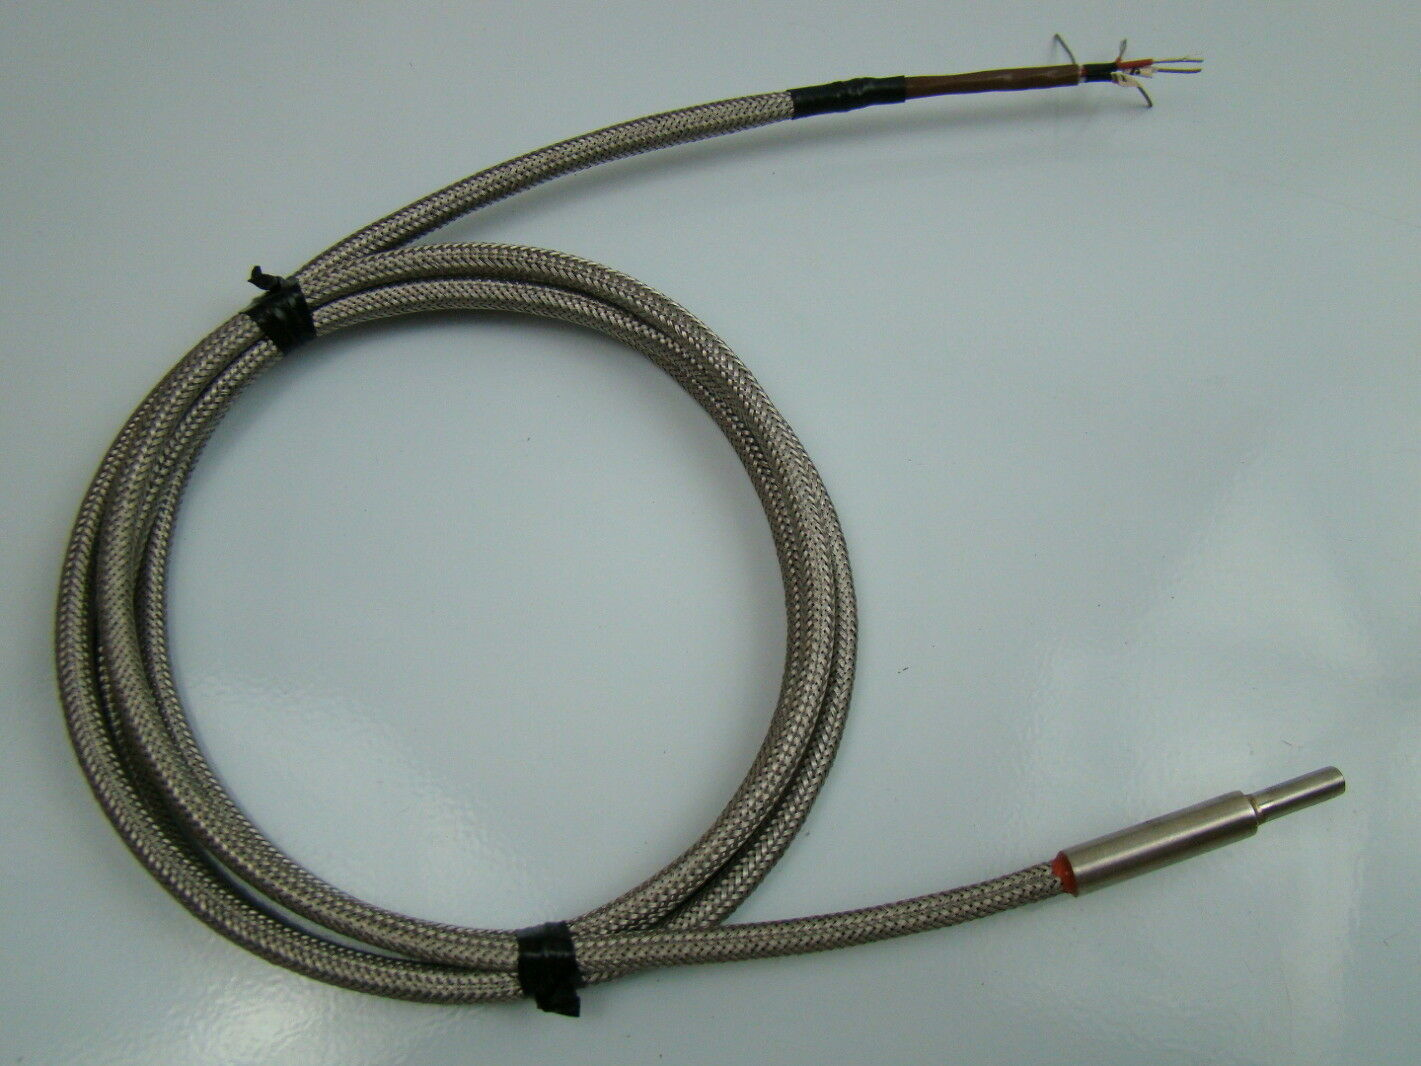 hight resolution of pyco thermocouple braided wire 21 6033 jj 2 3 72